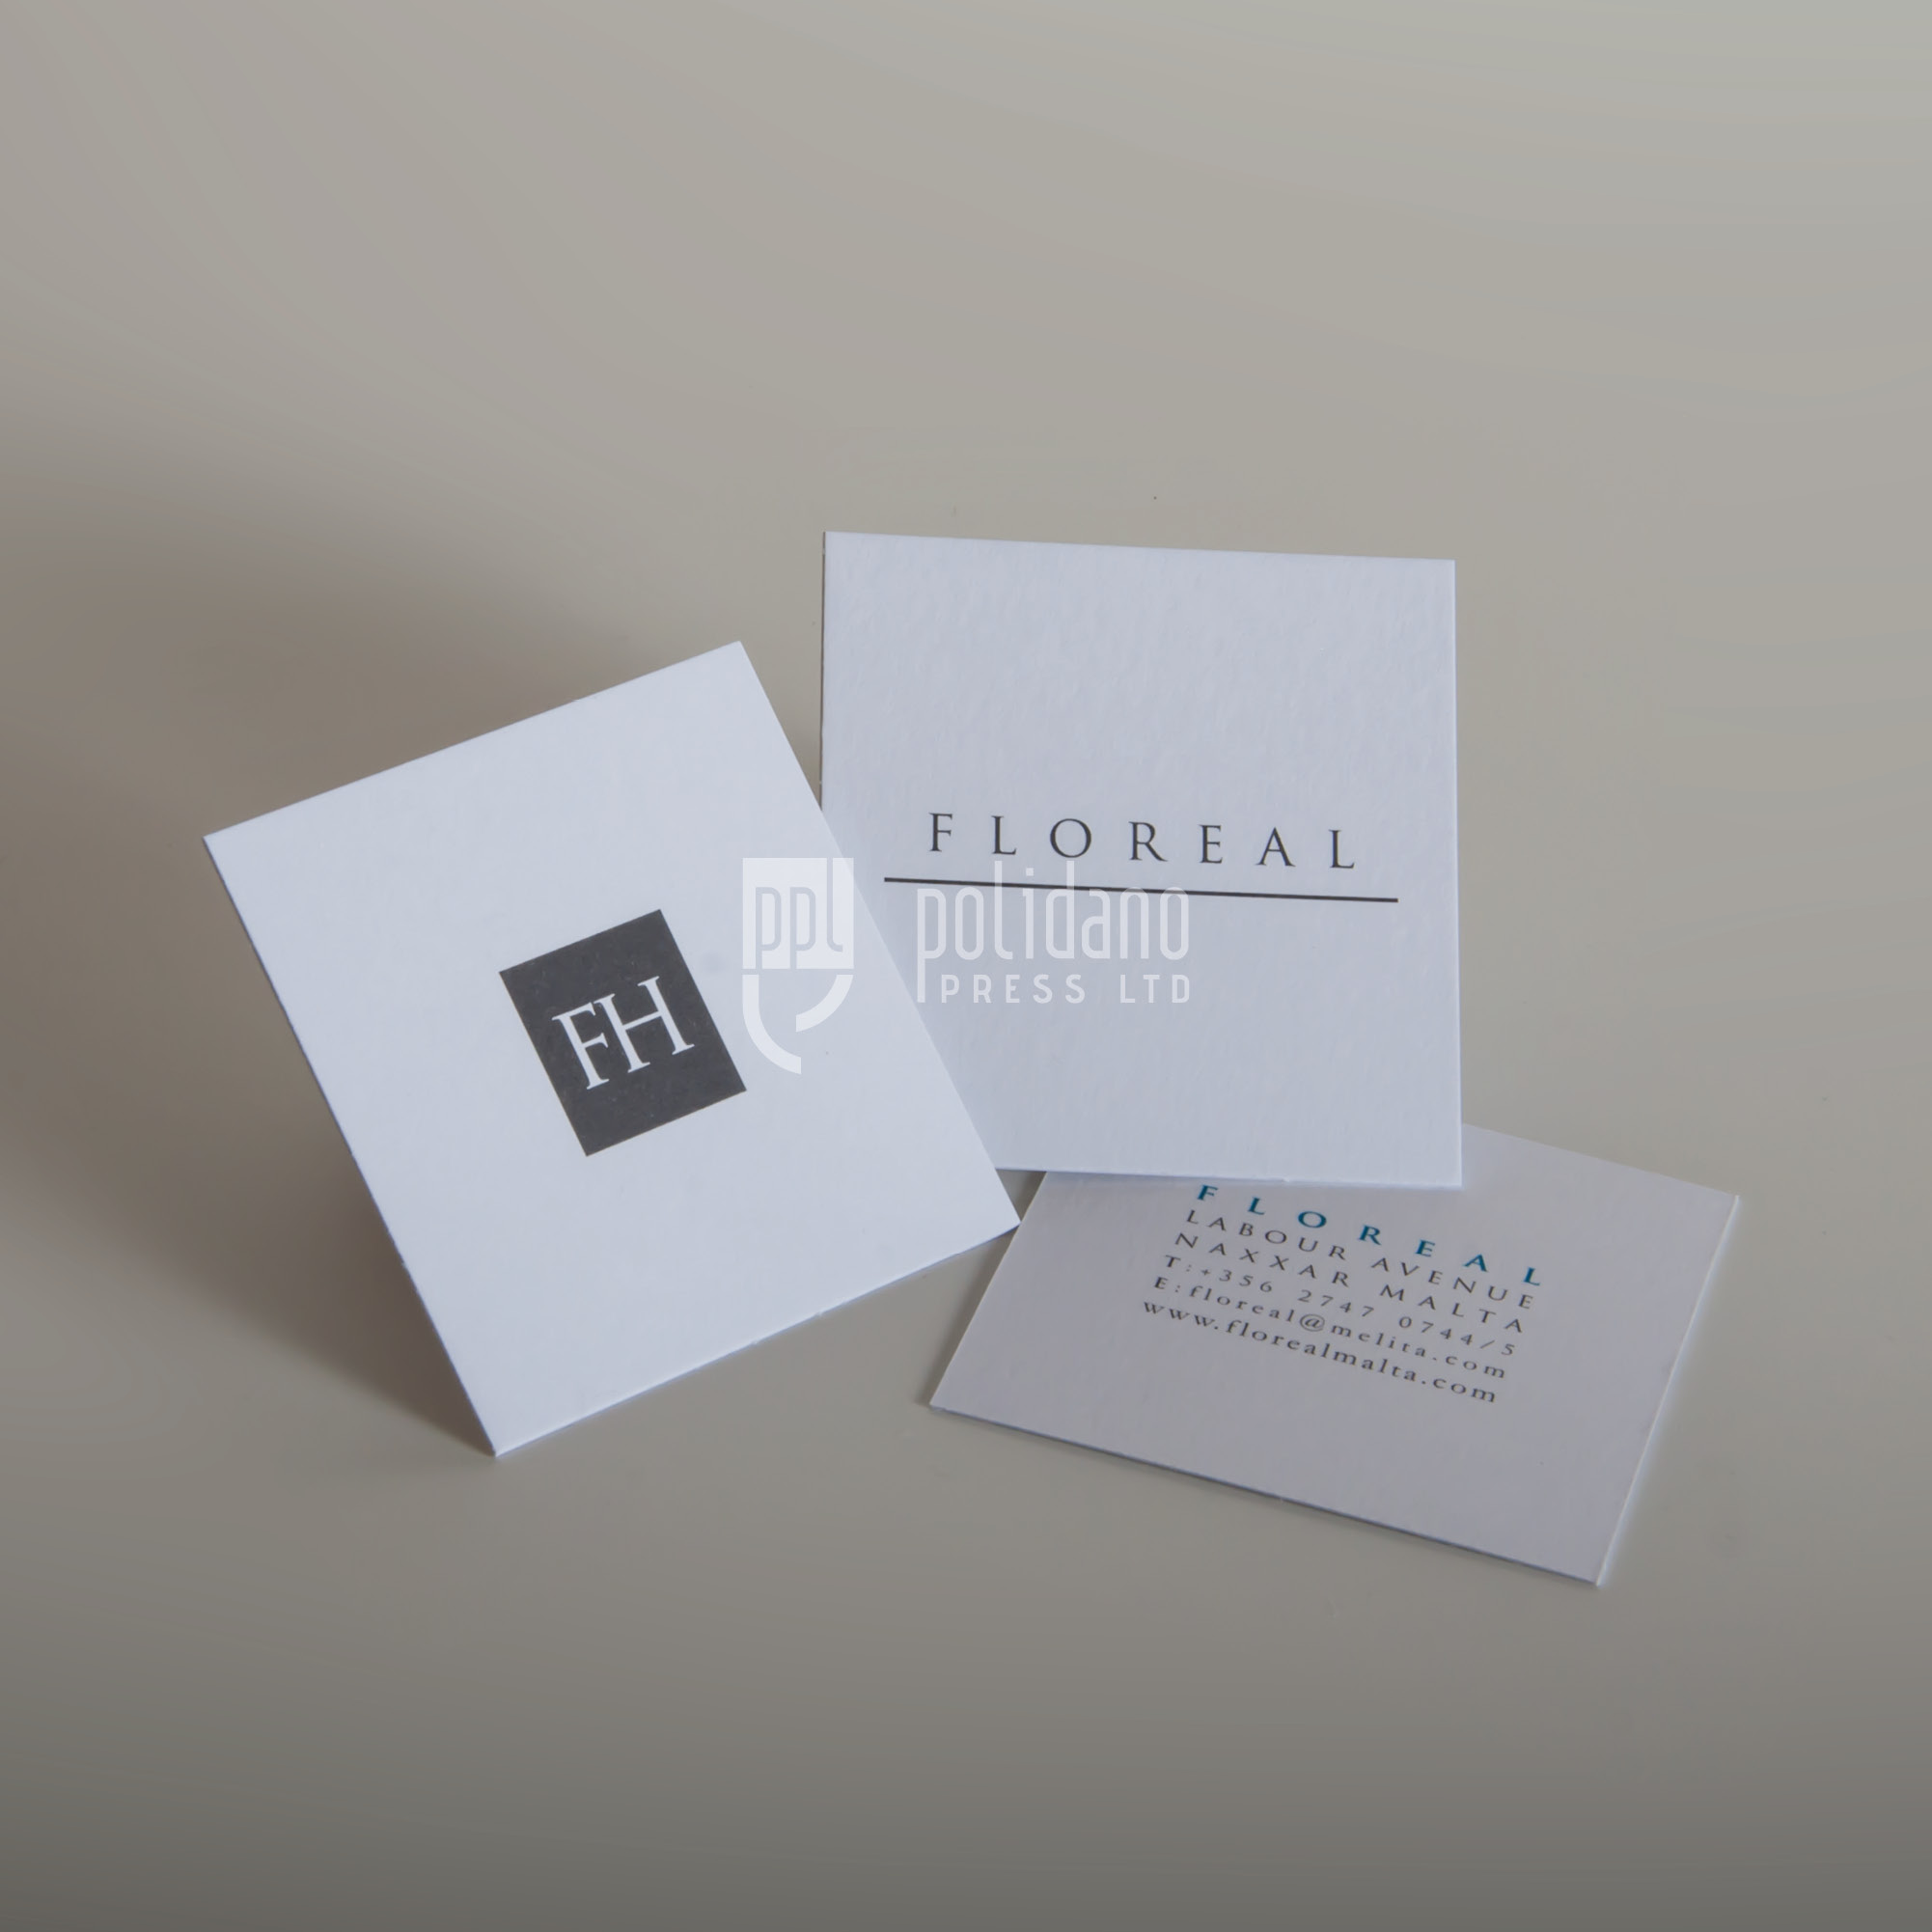 Floreal business cards